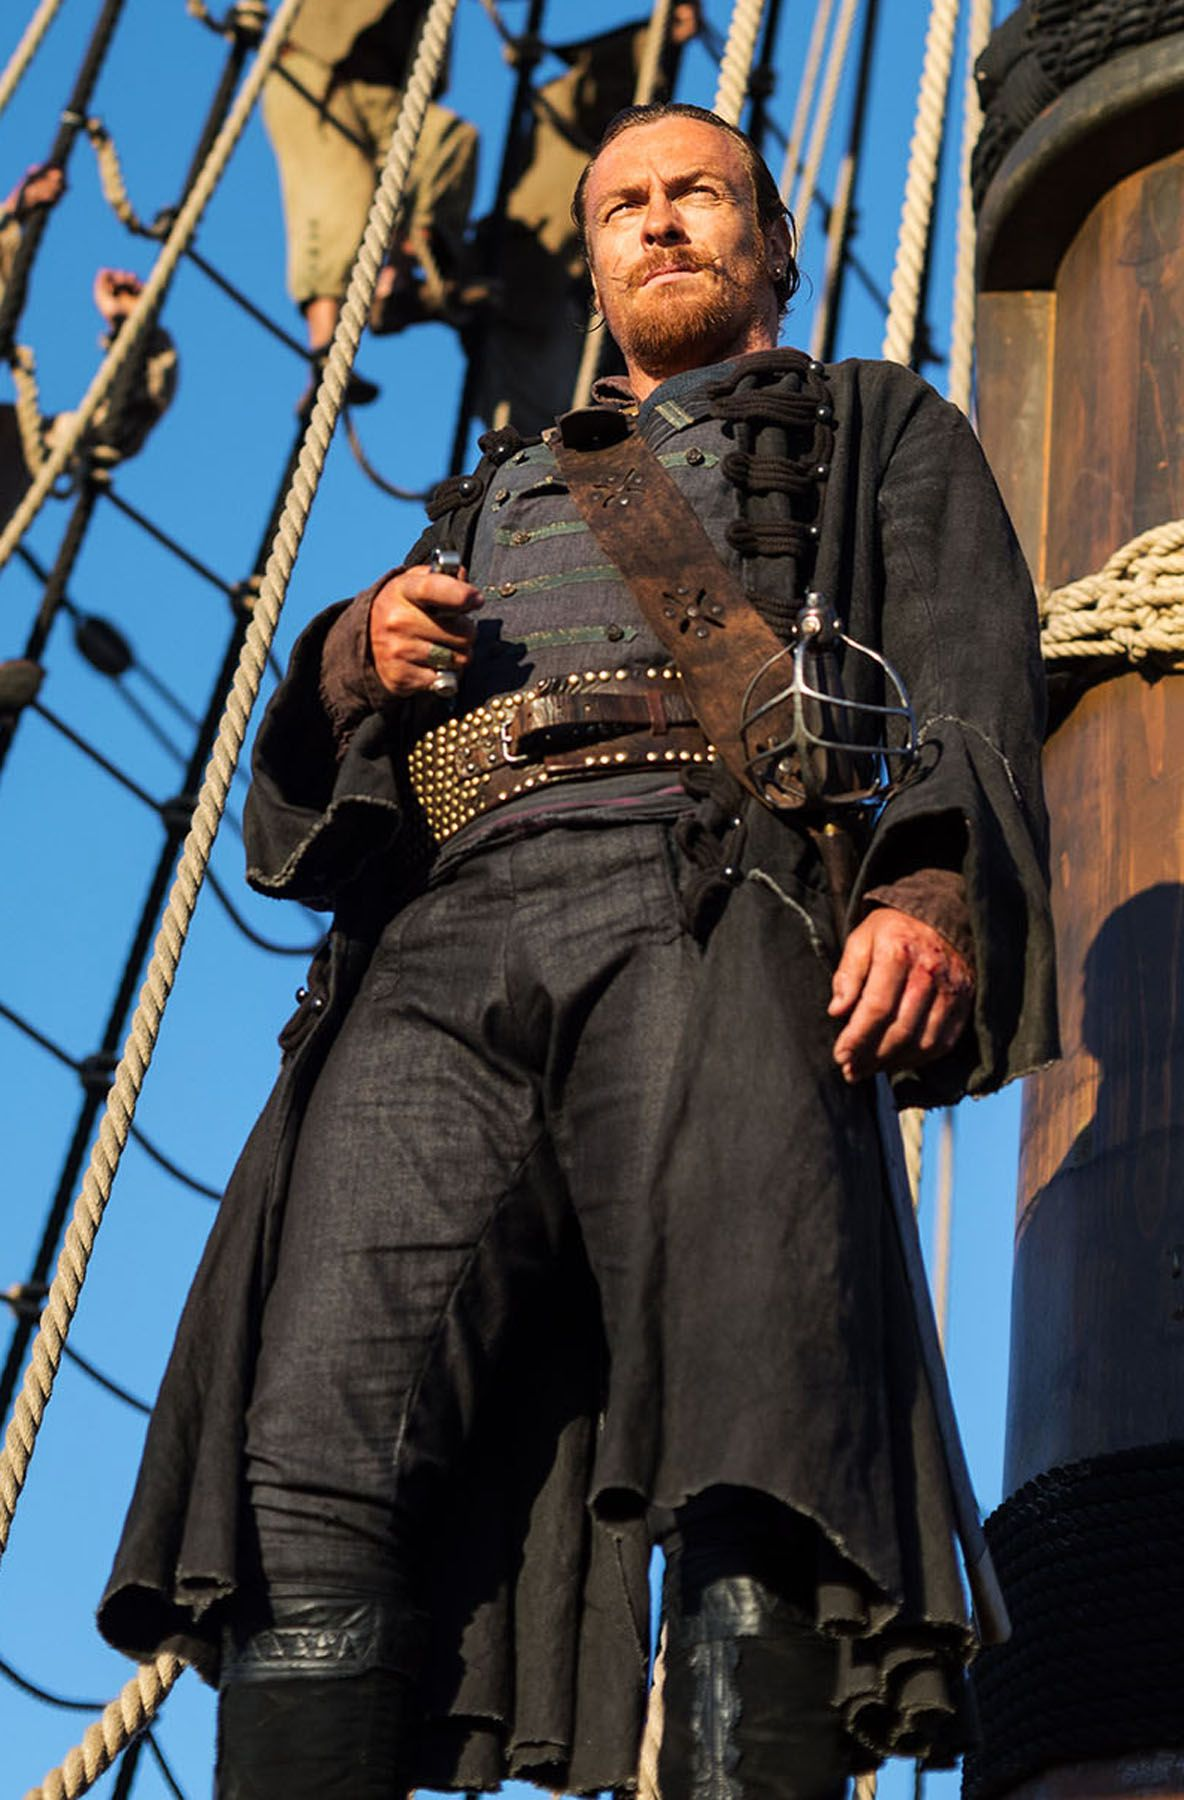 Black sails s3 pirate captain flint leather coat - Sebastian Macisaac Actor Is Toby Stephens The Jezebel S Daughter Pinterest Black Sails Toby Stephens And Tv Series